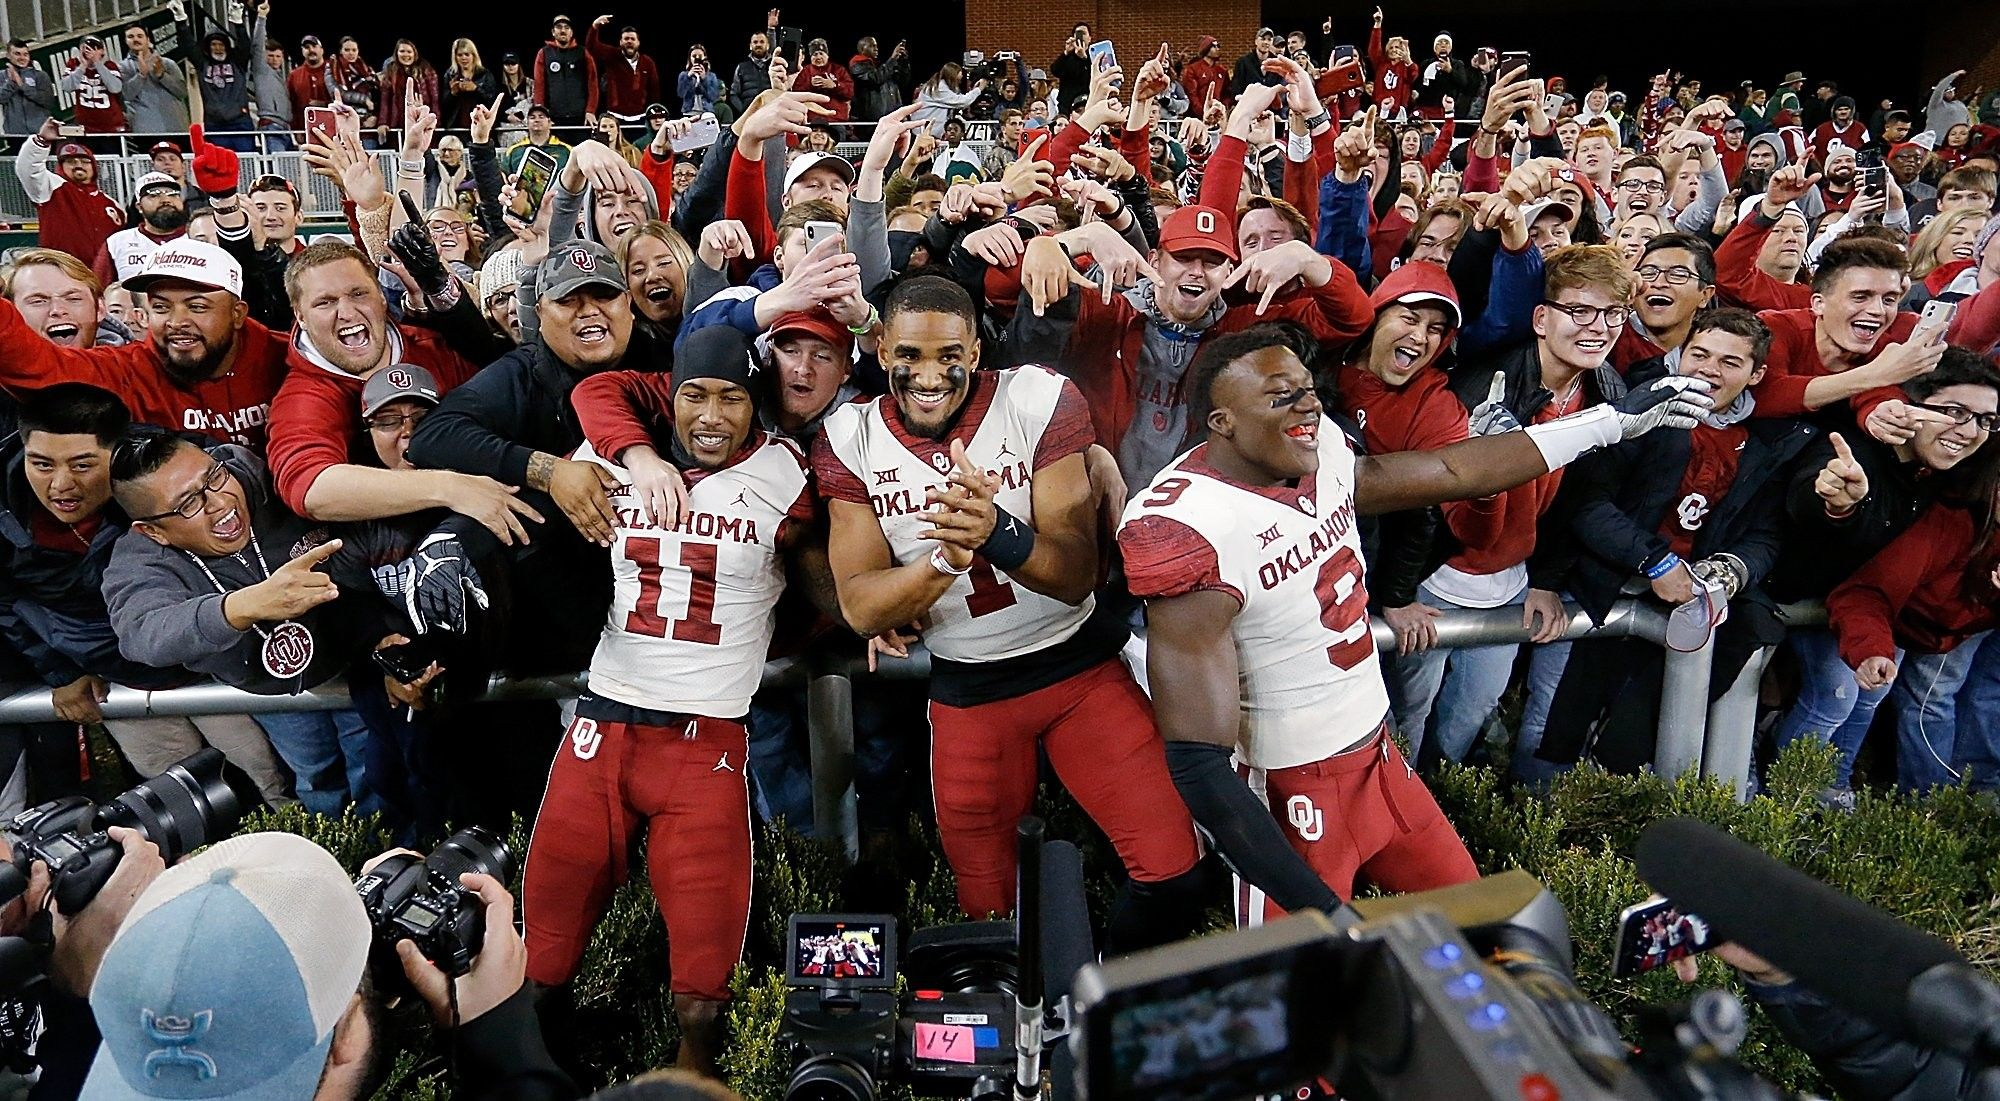 Pin by Kyle Burgess on BOOMER SOONER (With images